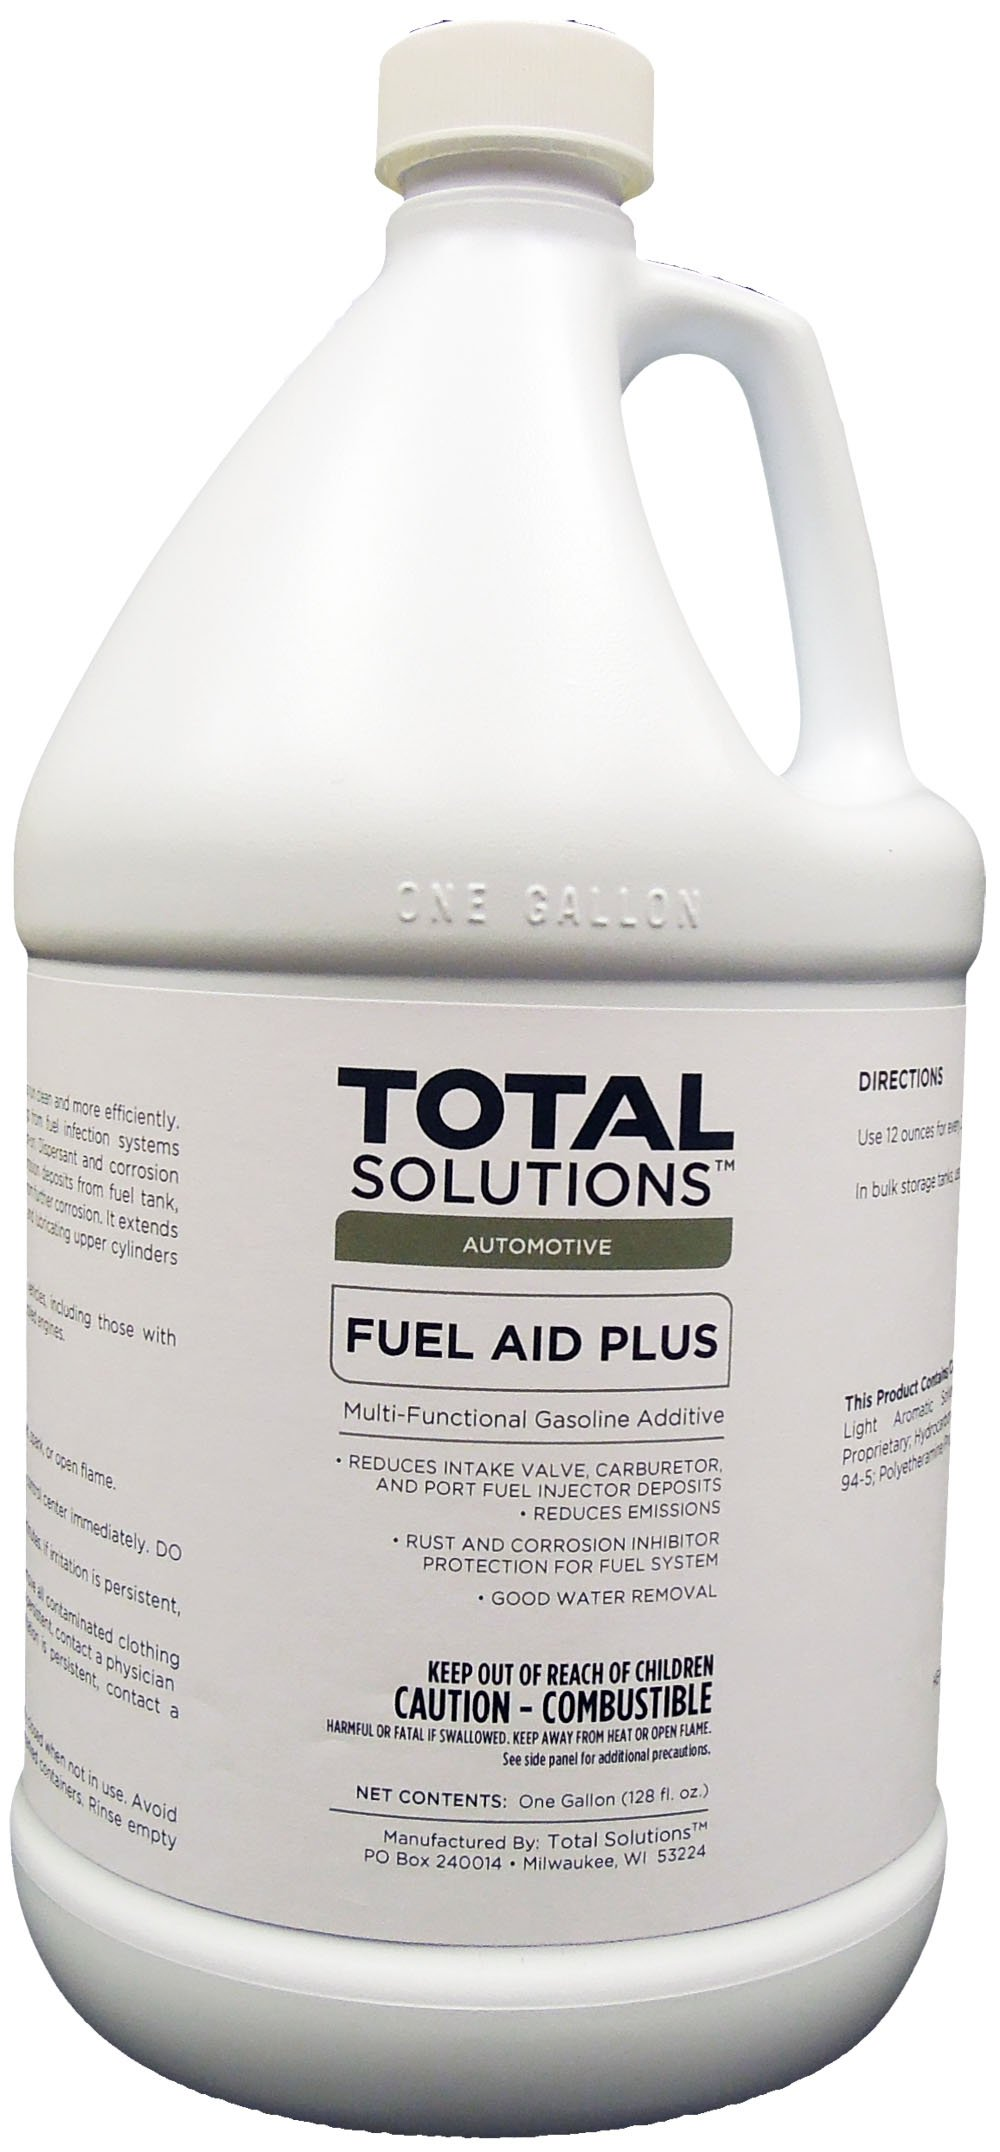 Fuel Aid Plus, Fuel Injector Cleaner and Conditioner for Gasoline - 4 Gallons